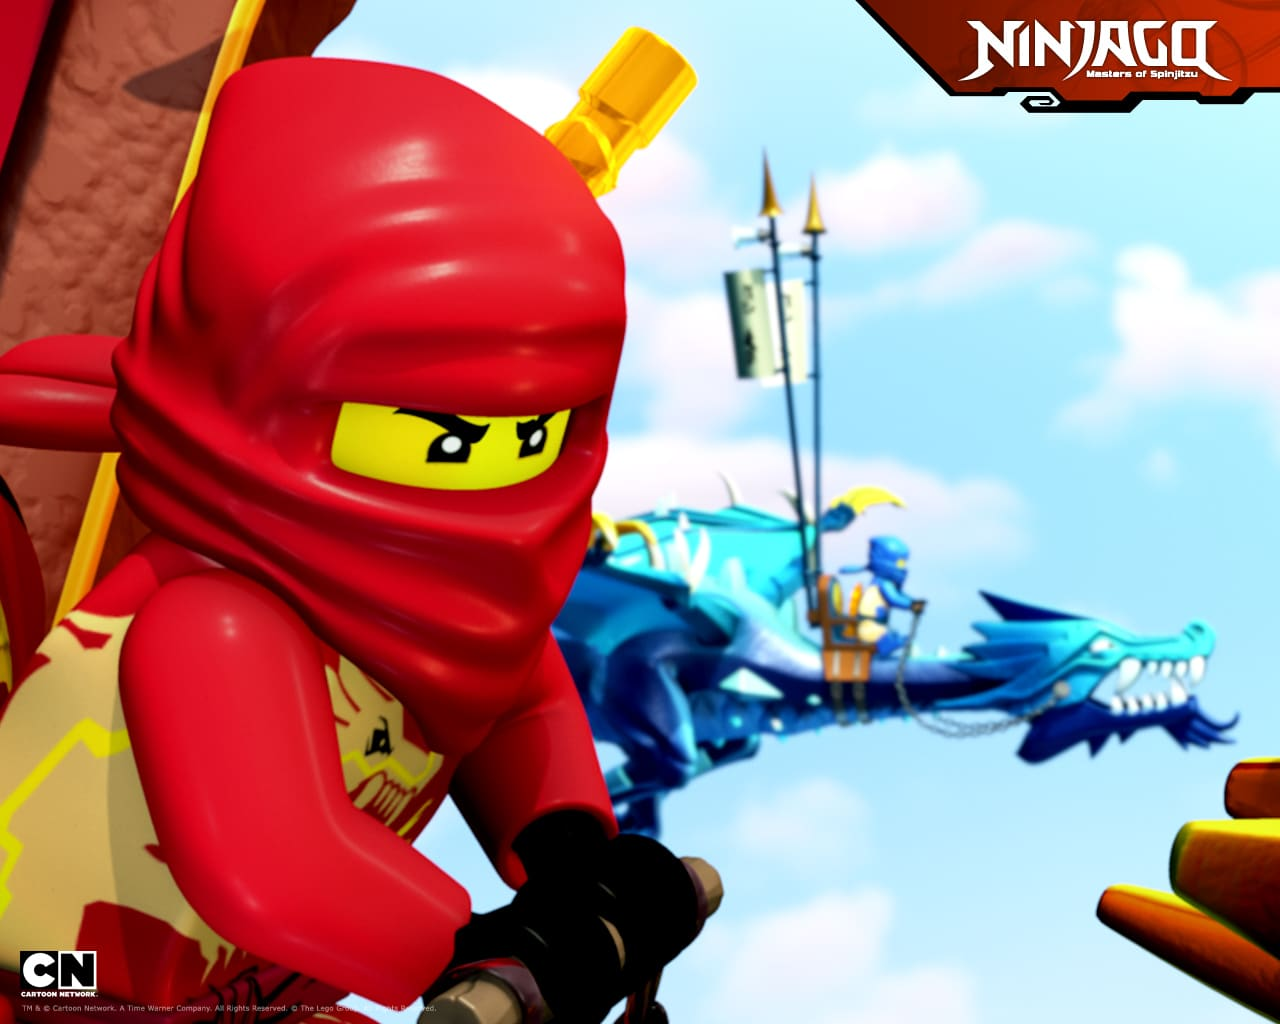 1280x1024 NINJAGO | Free Wallpapers and Pictures | Cartoon Network